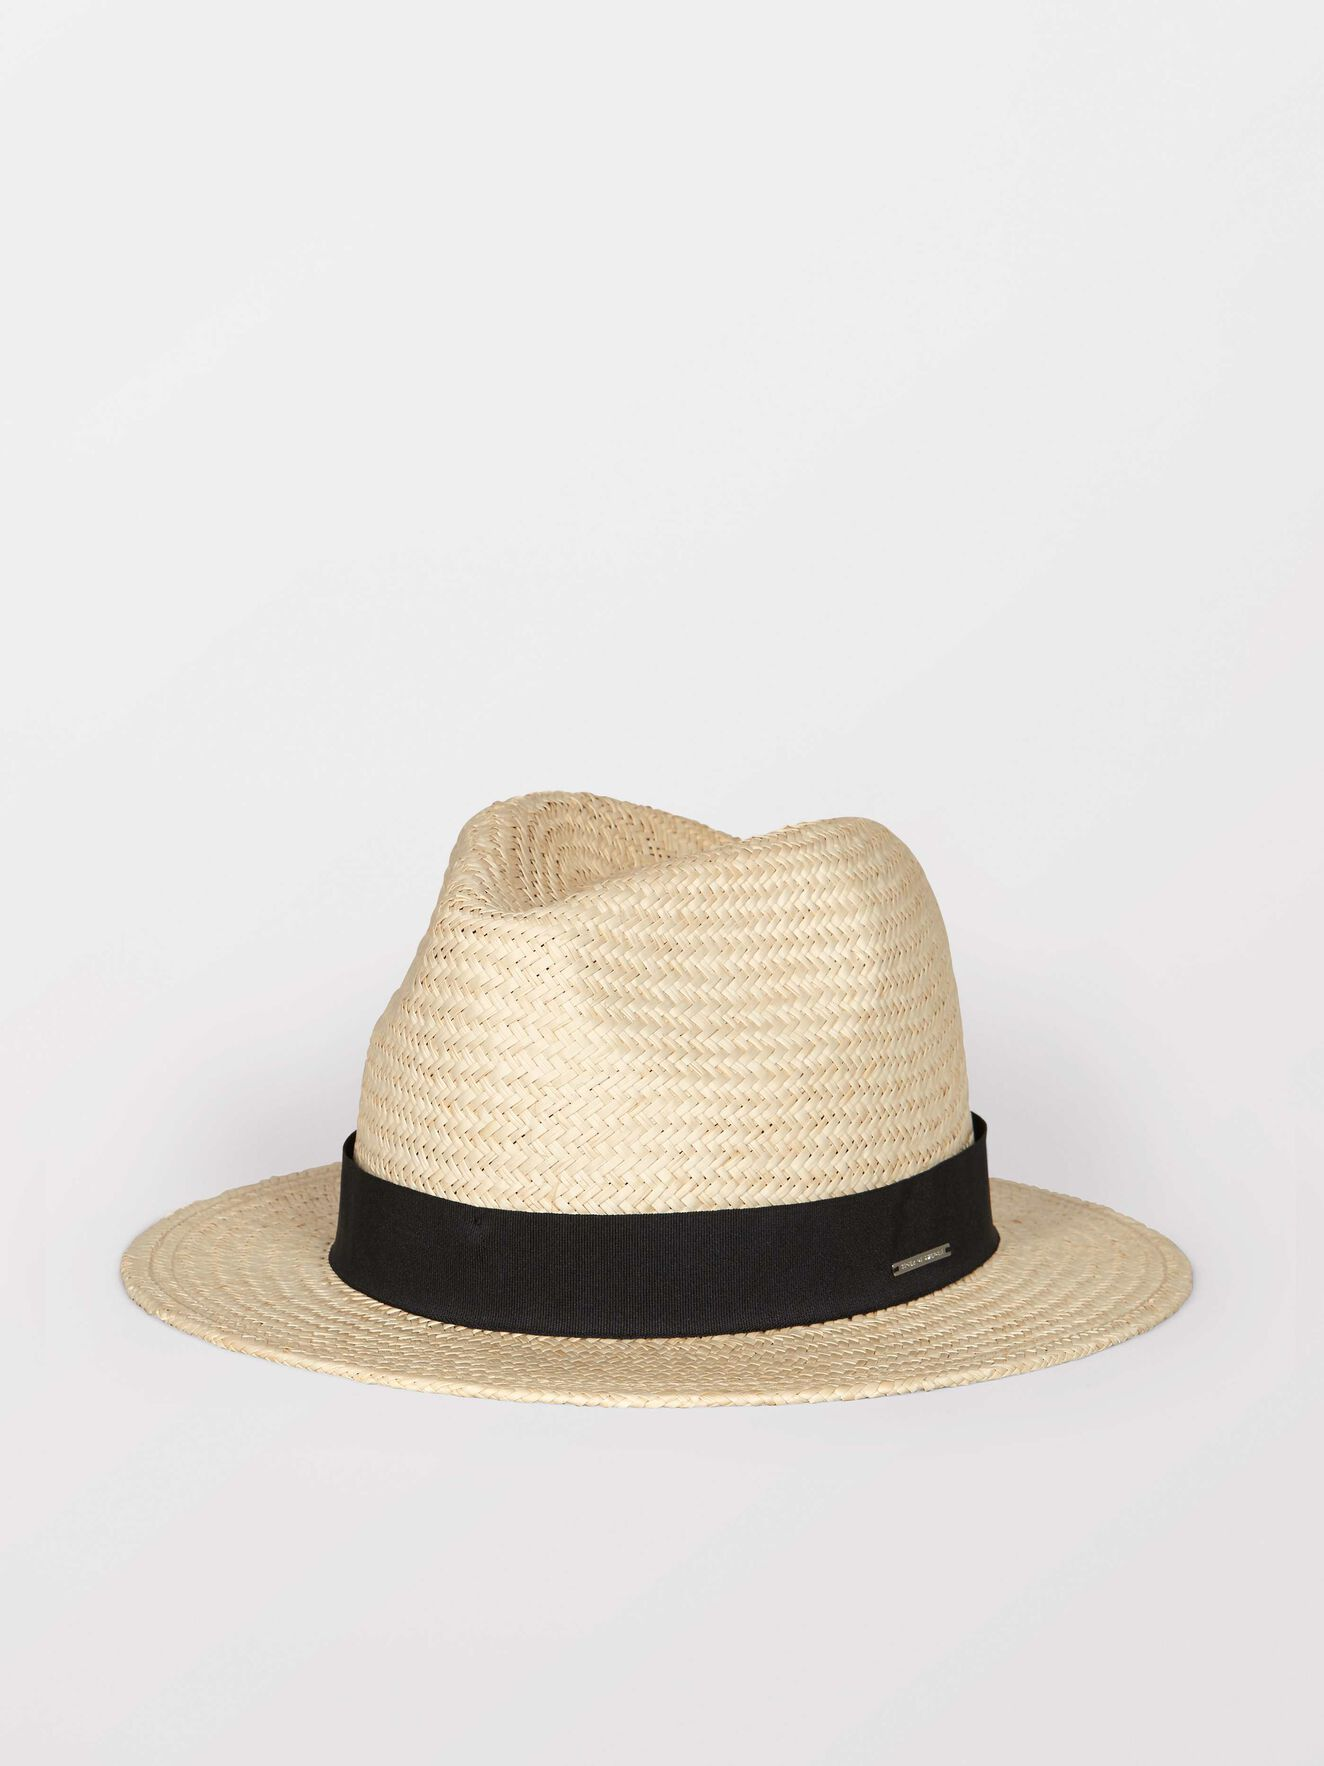 Misma 2 Hat in Barley from Tiger of Sweden